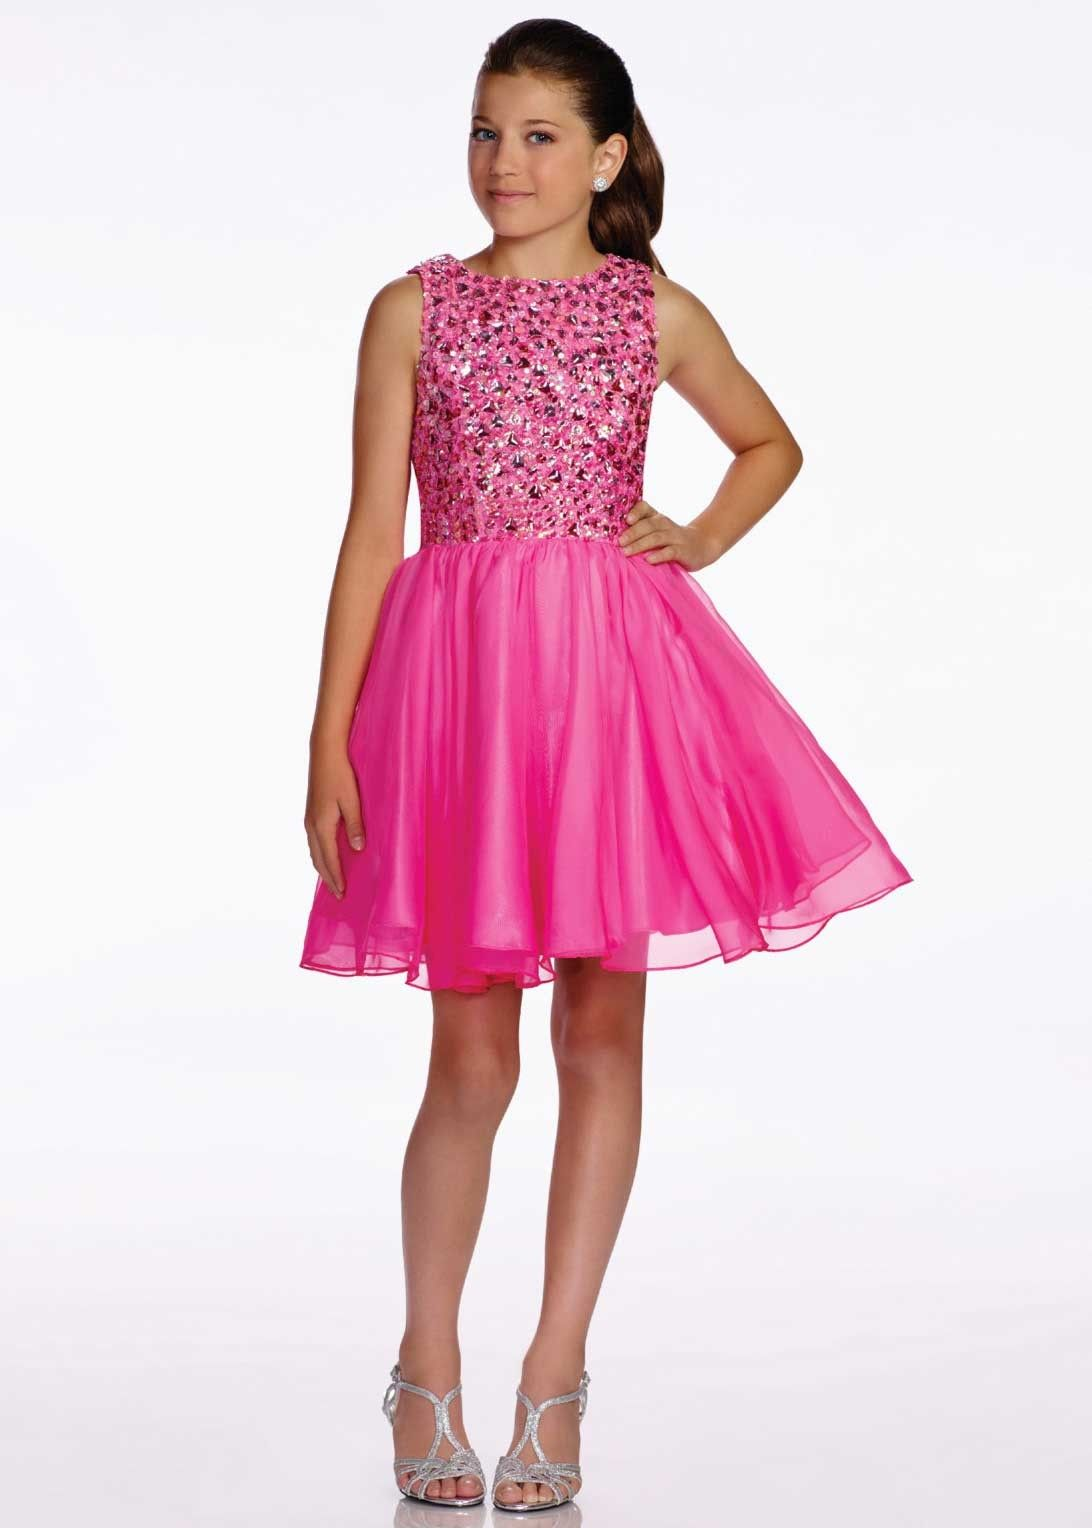 Lexie by Mon Cheri TW11655 Sparkly Beaded A-Line Dress | Vestidos ...